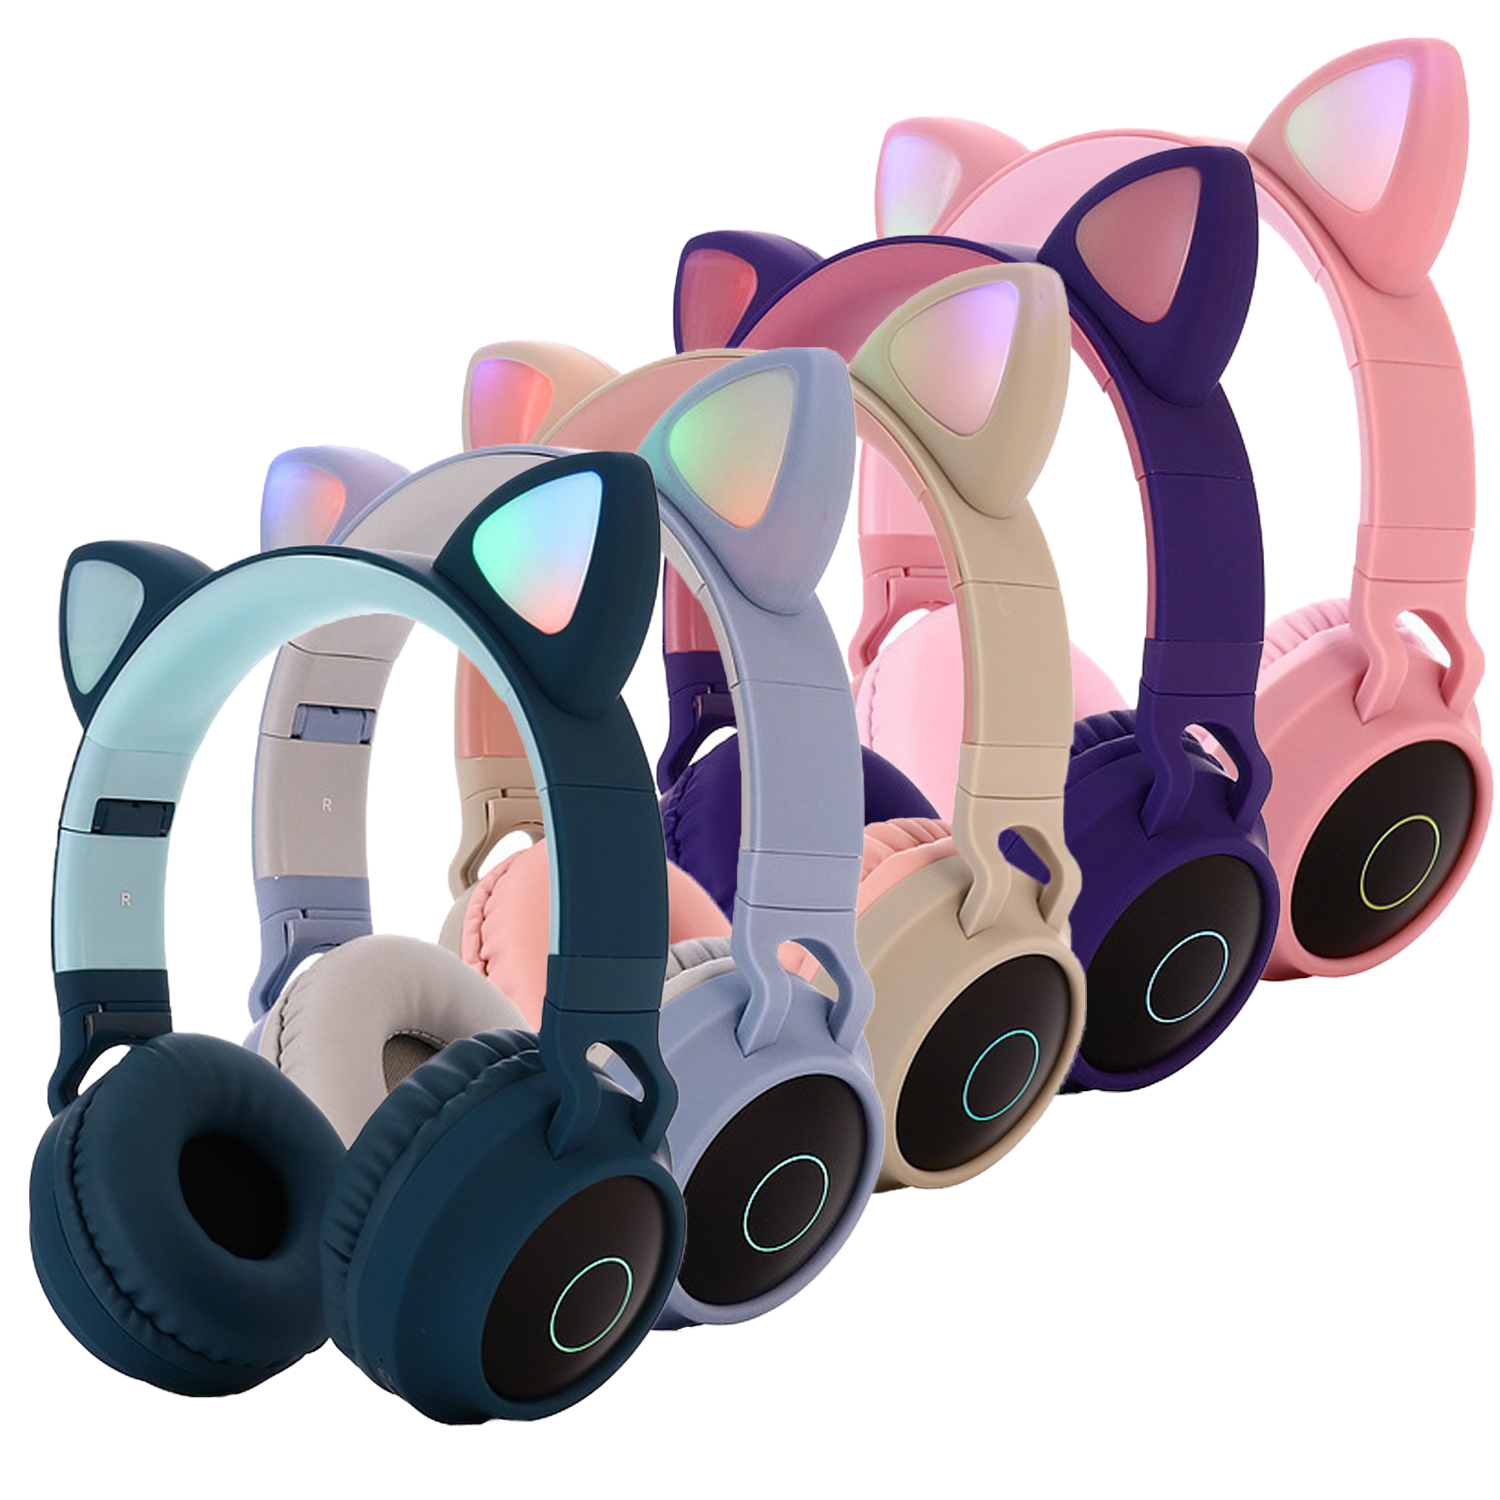 Vococal Cute <font><b>Cat</b></font> <font><b>Headphone</b></font> Foldable Over-Ear <font><b>Bluetooth</b></font> 5.0 Headset with LED Light Support TF Card for Kids Christmas Xmas Gifts image